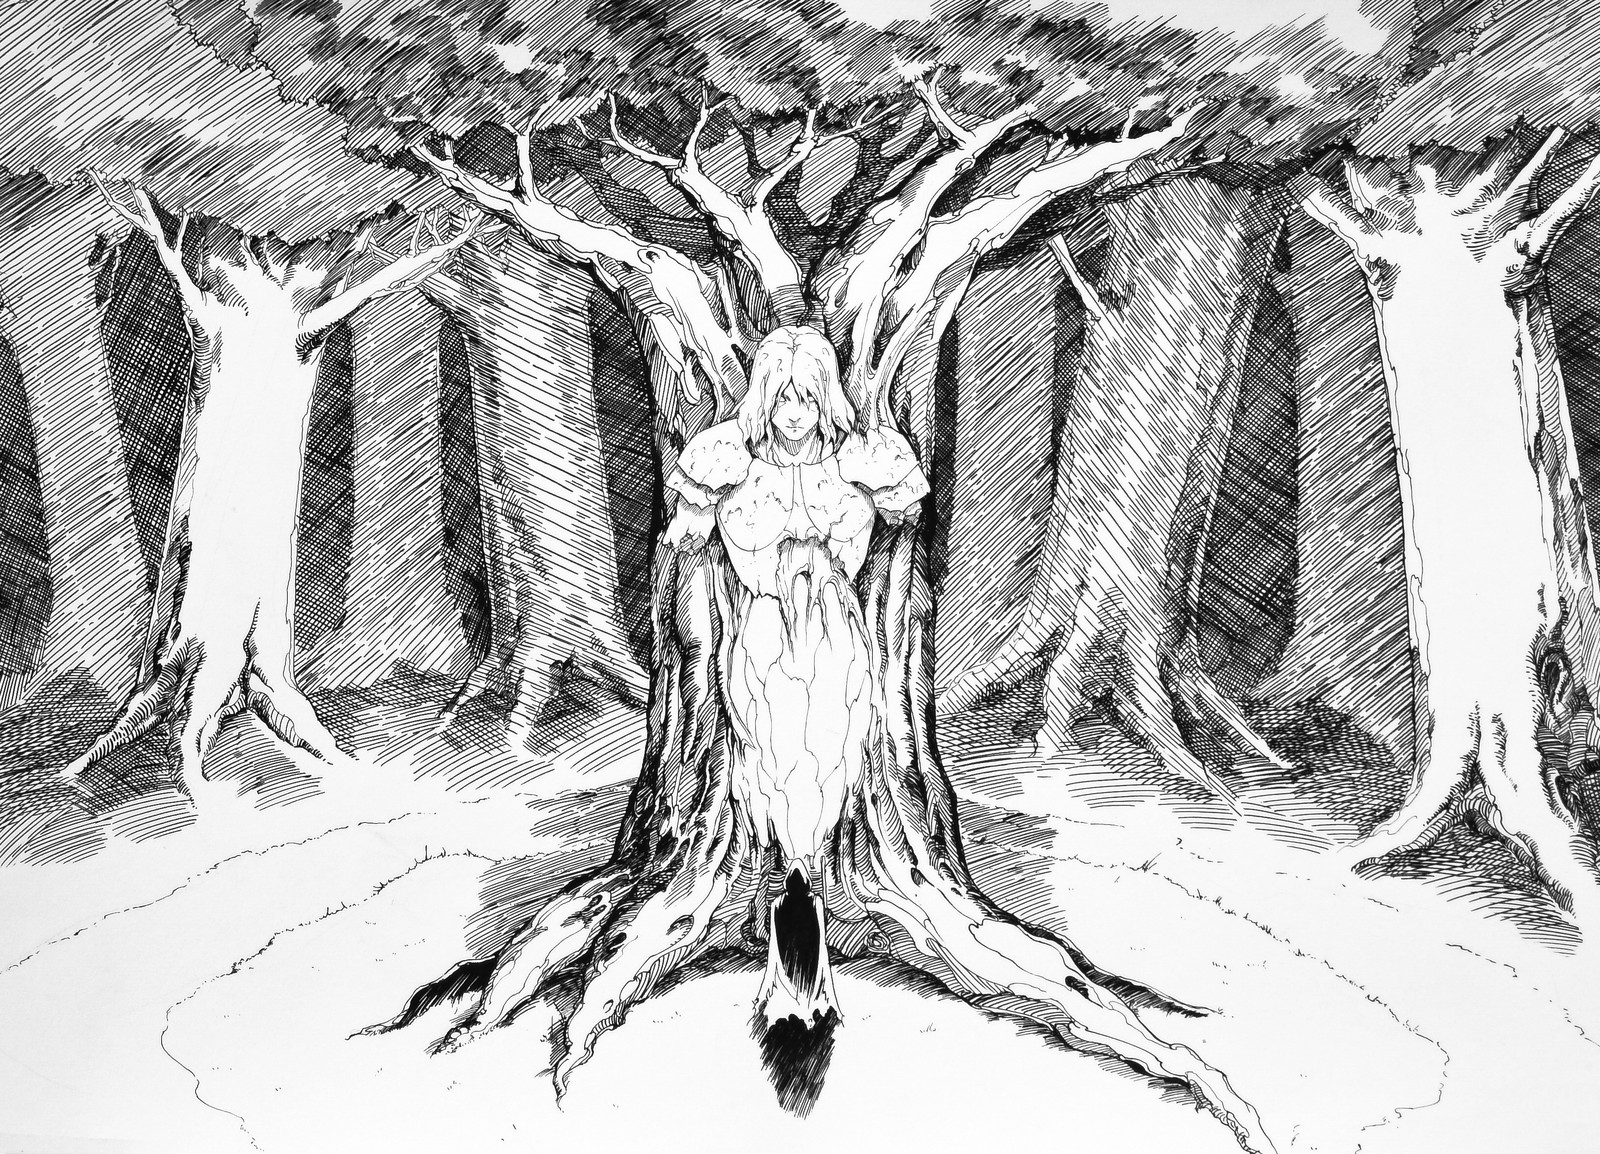 Lee Dabeen. The Tree. 2018. Pen on paper, 545 x 394 mm.